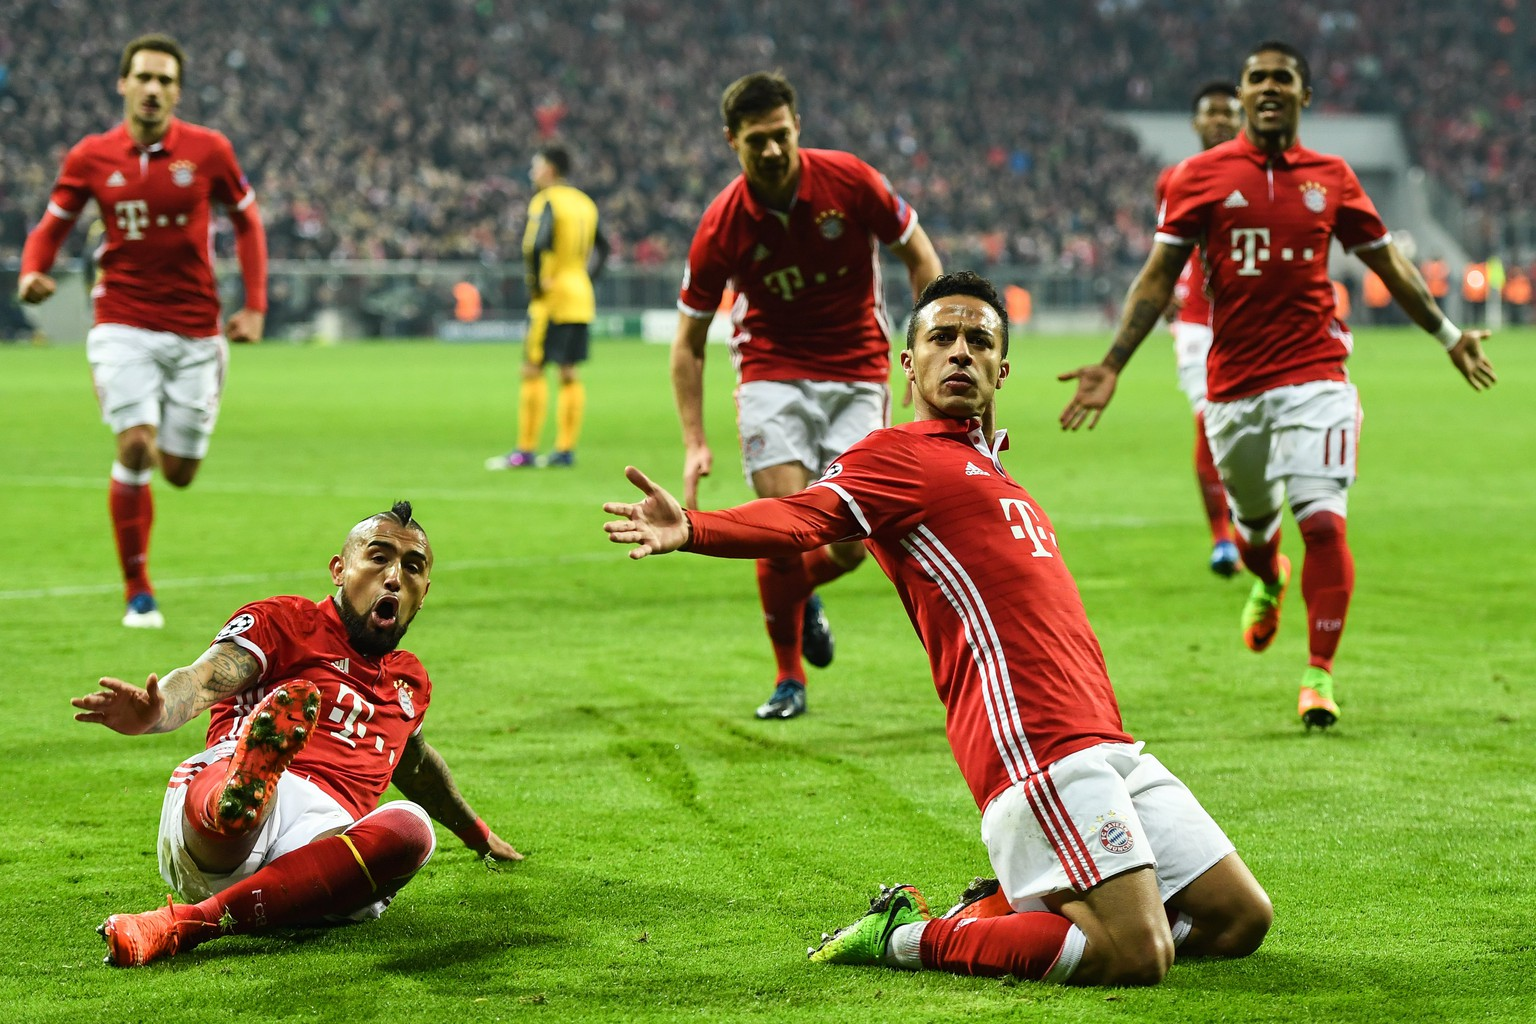 epa05795790 Thiago of Bayern Munich celebrates with team mates after scoring a goal during the UEFA Champions League round of 16 first leg soccer match between Bayern Munich and Arsenal FC at the Allianz Arena, in Munich, Germany, 15 February 2017.  EPA/LENNART PREISS